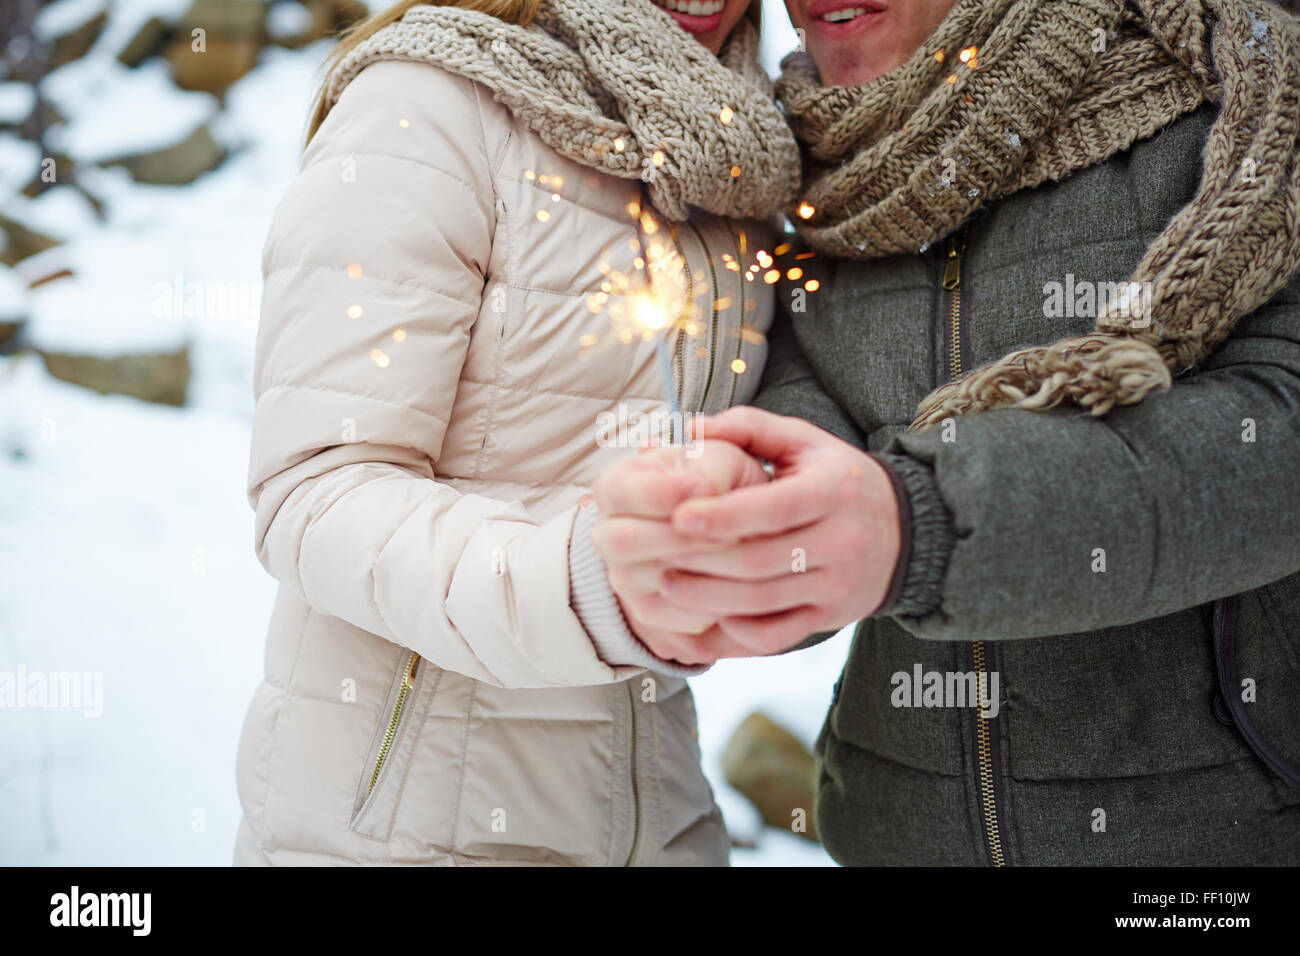 Young dates burning Bengal light on Valentine day - Stock Image